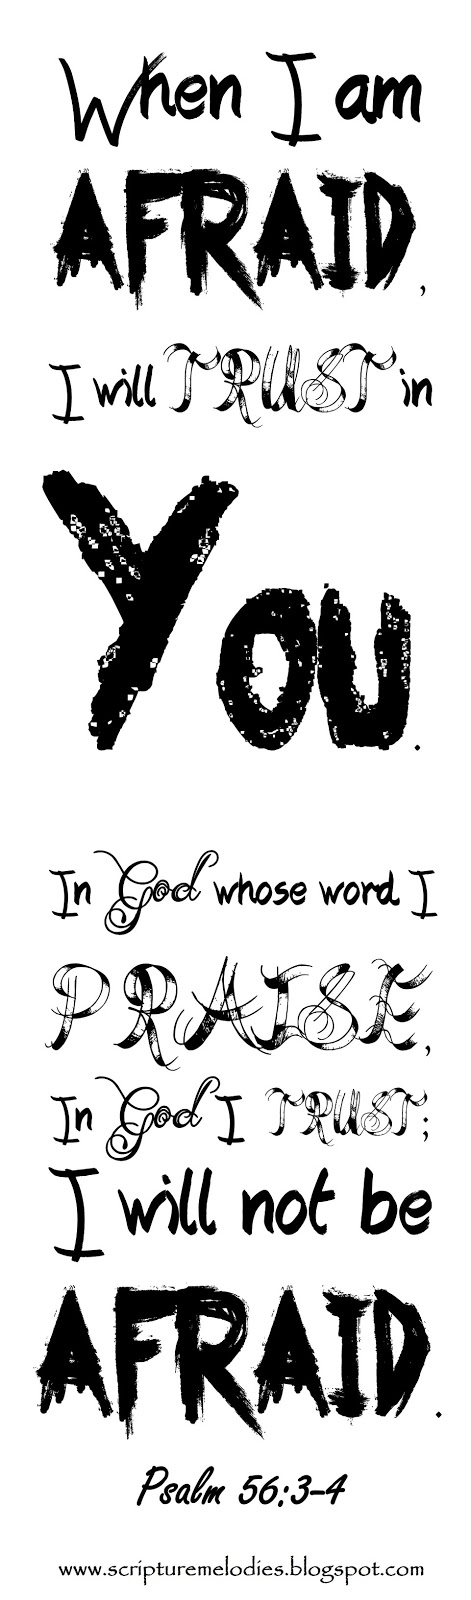 when i am afraid i will trust in you in god whose word i praise in god i trust i will not be afraid what can mortal man do to me psalm 563 4 - Psalm 56 3 Coloring Page